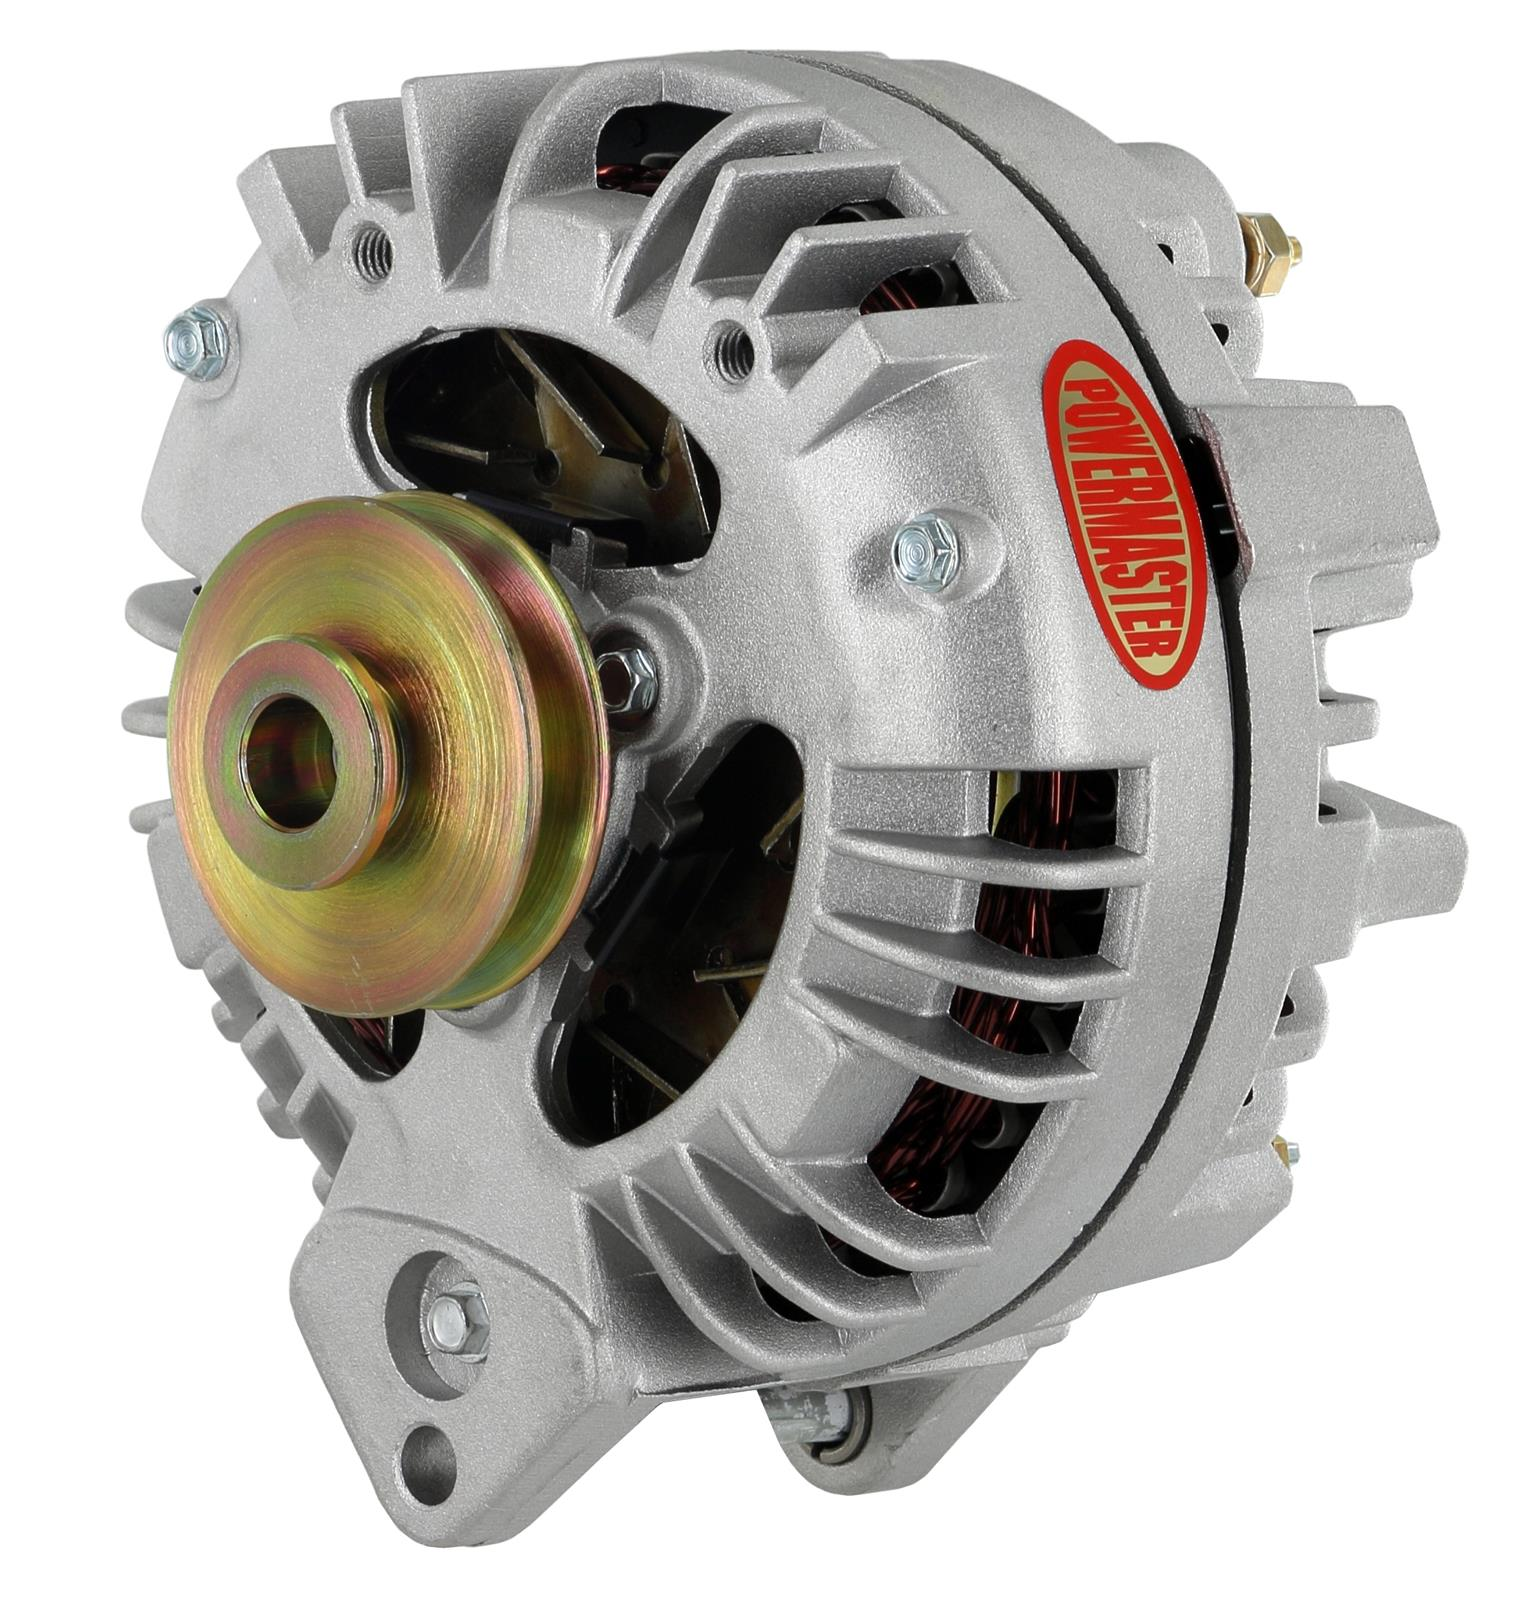 hight resolution of powermaster retro alternators 75191 free shipping on orders over 99 at summit racing